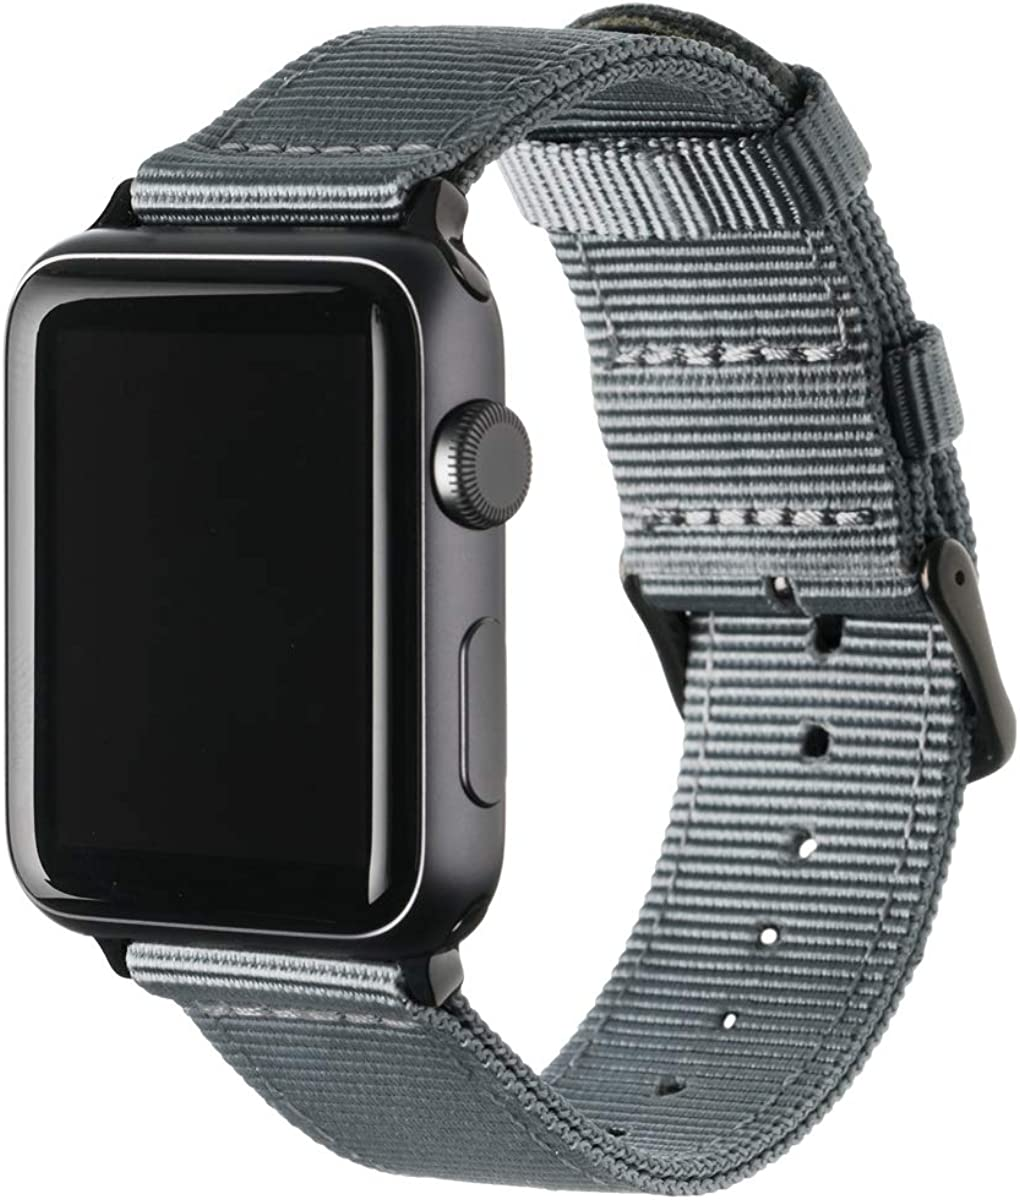 Archer Watch Straps - Premium Nylon Replacement Bands for Apple Watch | Mulitple Colors, 38/40mm, 42/44mm